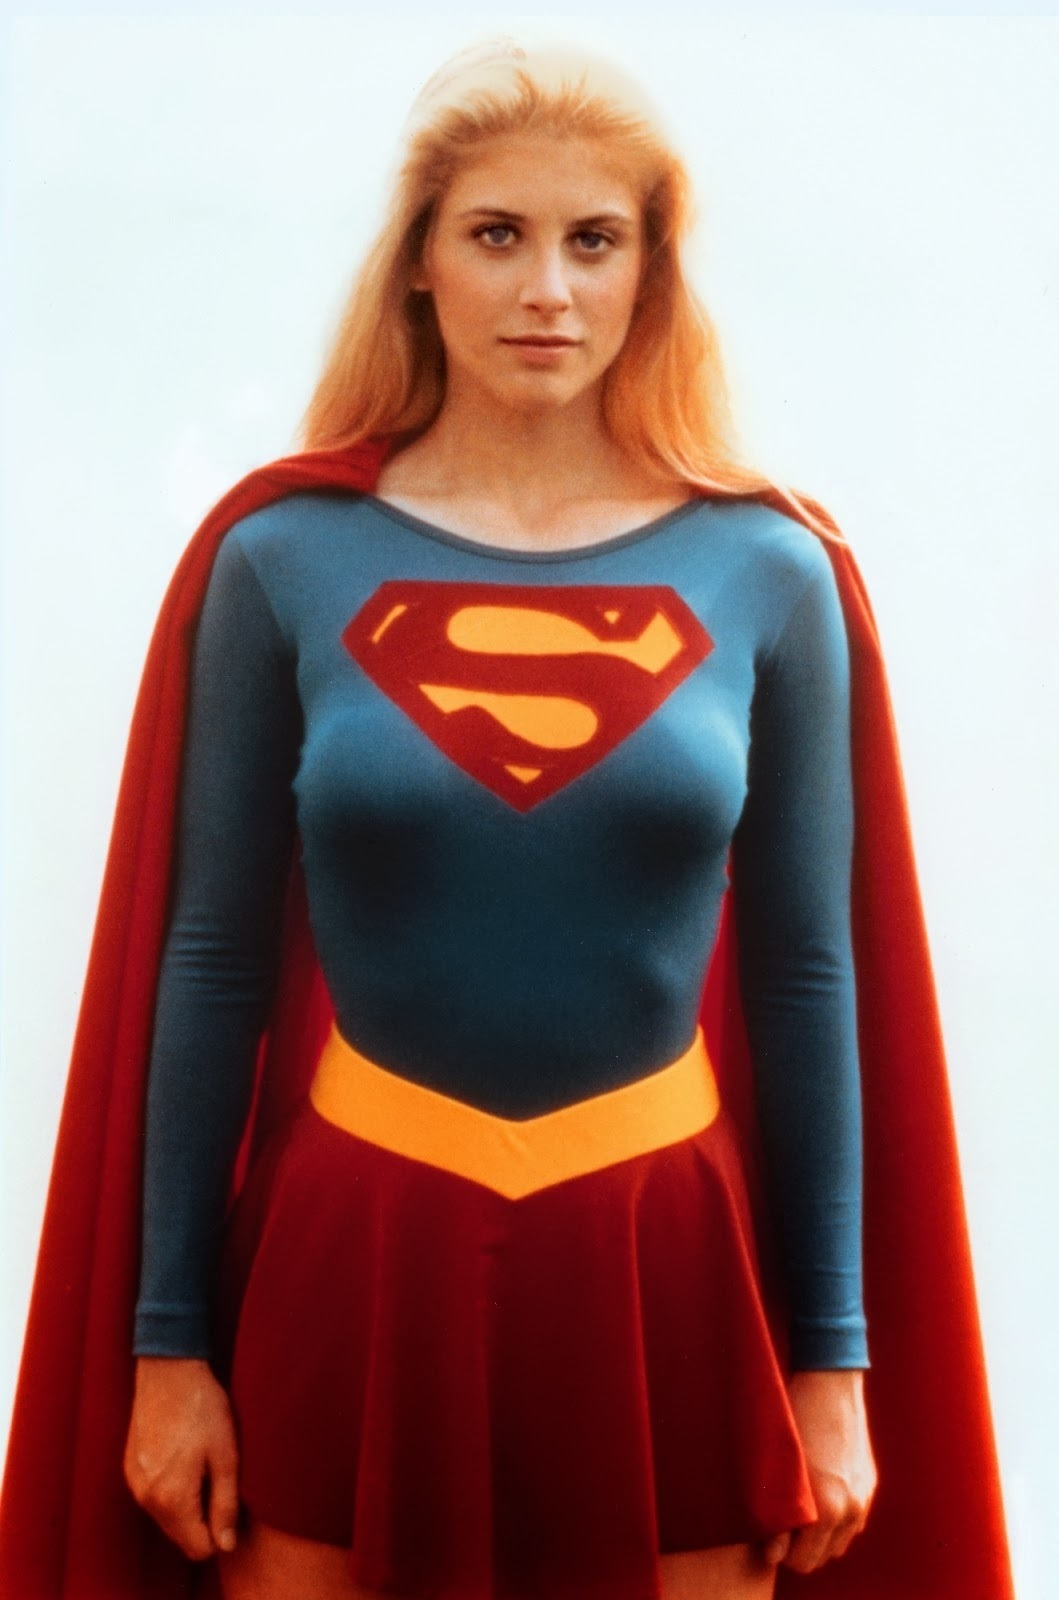 helen-slater-as-supergirl-a5771bce93e200c36f7cd9dfd0e5deaa-big-38